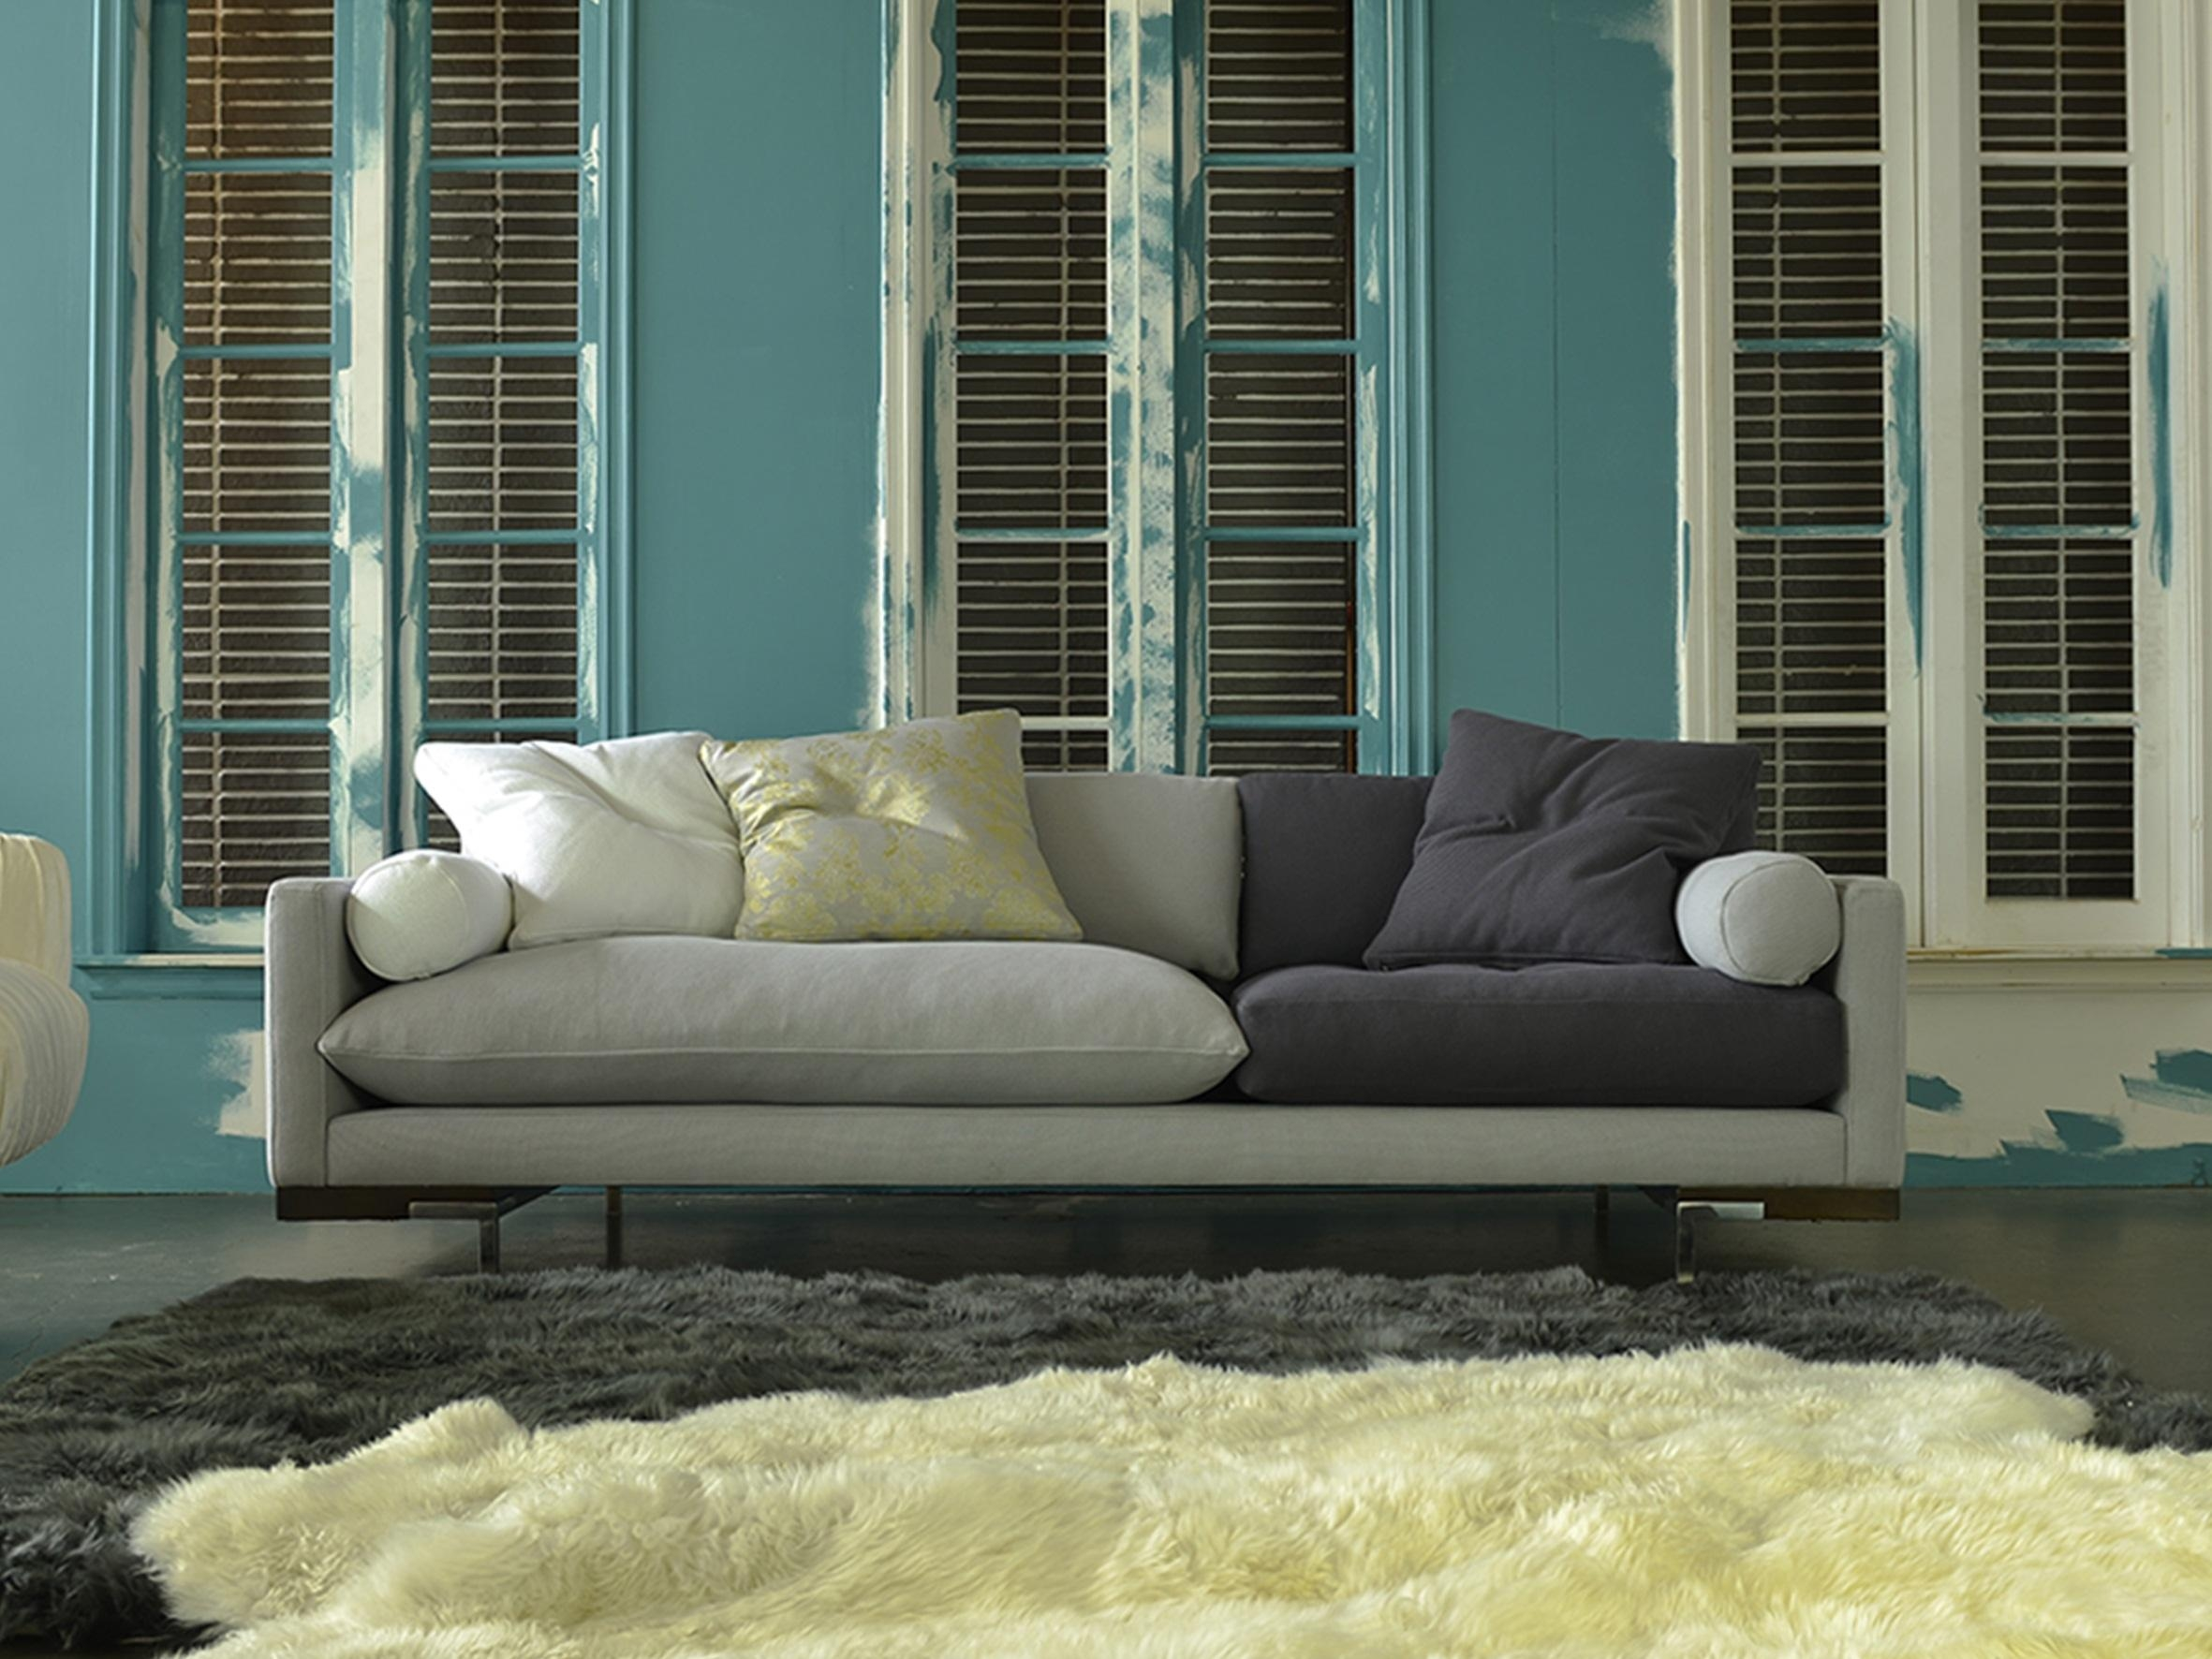 Nathan Anthony Sofa | Best Sofas Ideas – Sofascouch With Regard To Nathan Anthony Sofas (View 5 of 20)